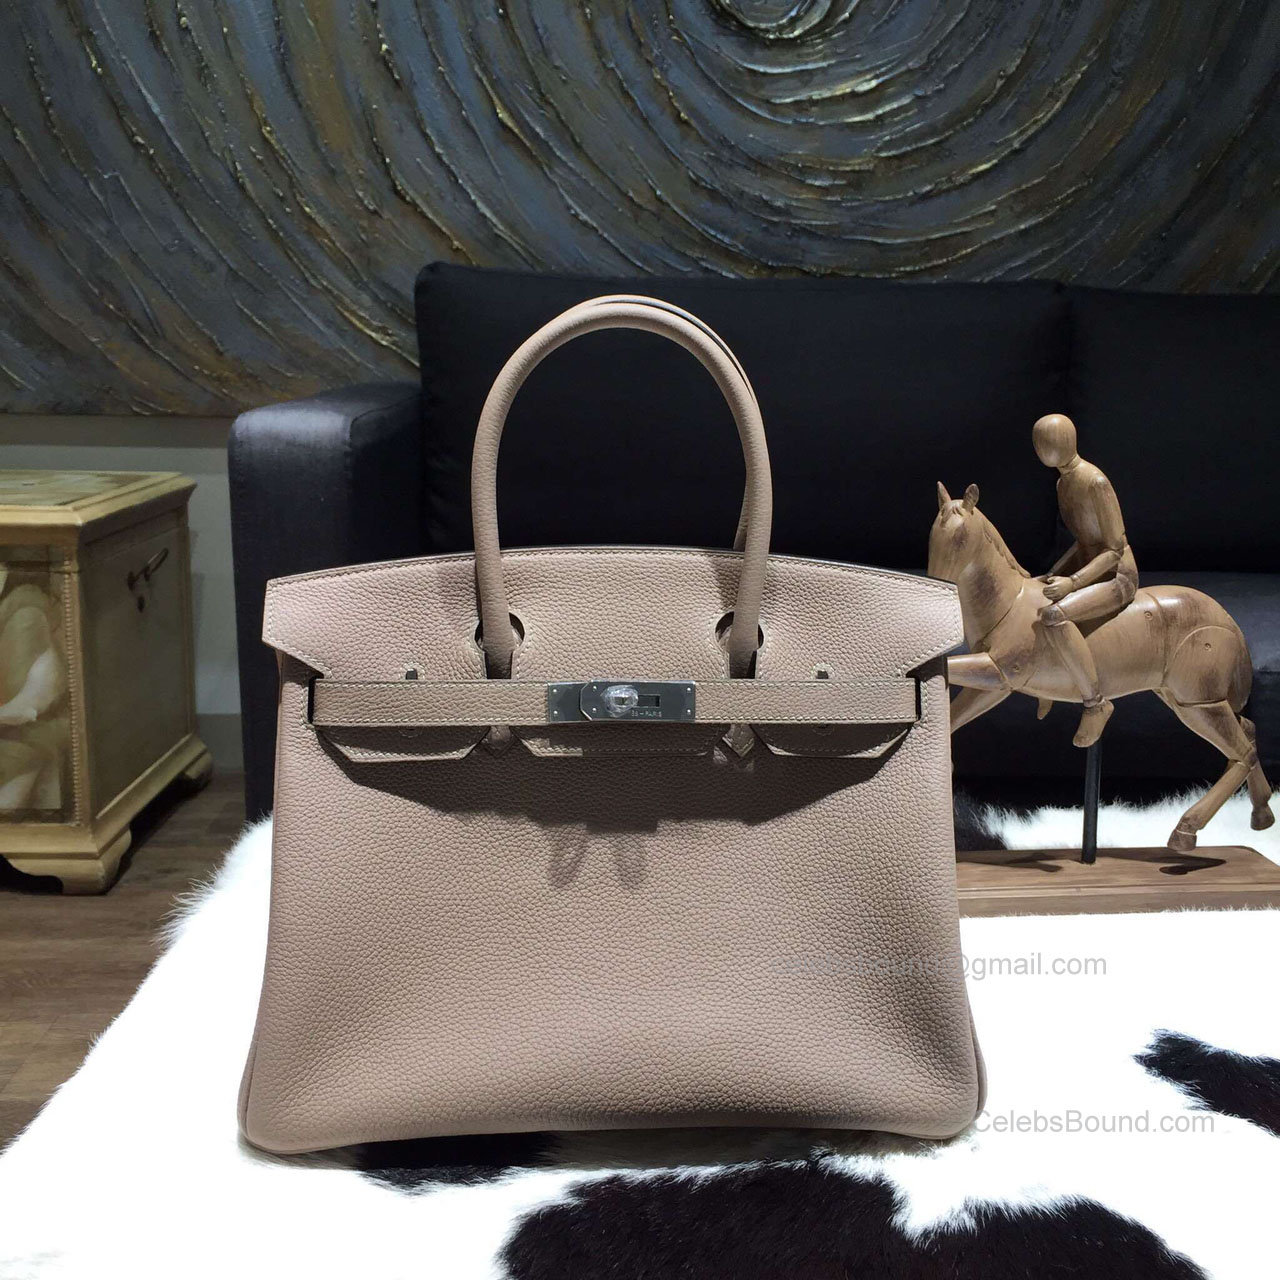 89bbb3d318ac Hermes Birkin 35 Bag Gris Tourterelle CK81 Togo Leather Handstitched Silver  hw